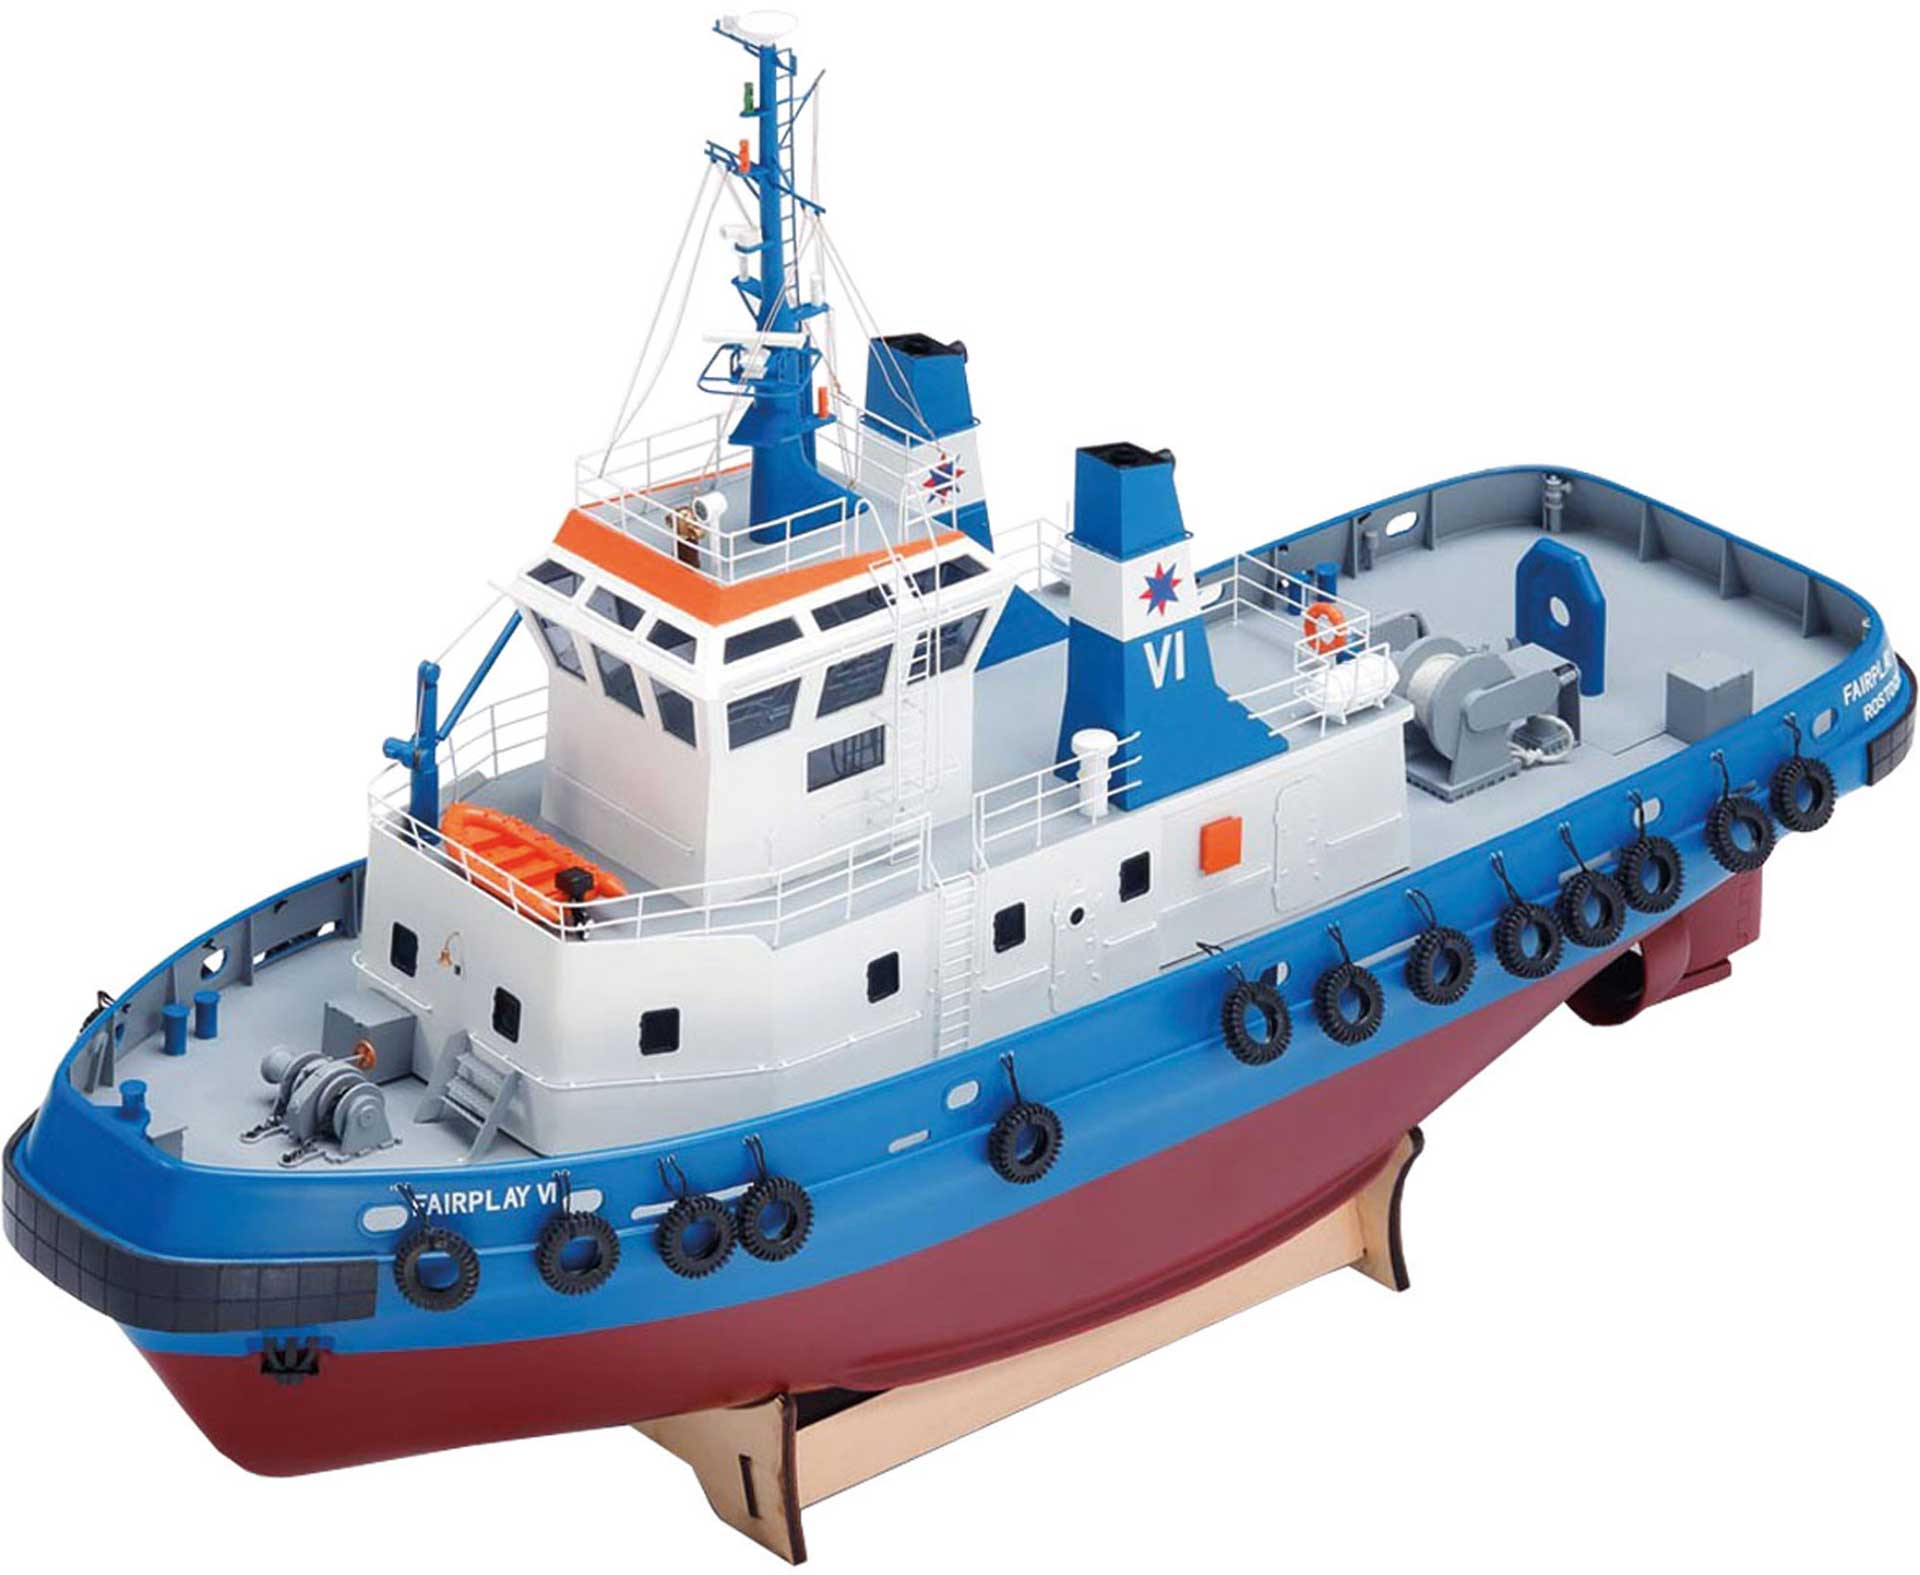 ROBBE FAIRPLAY VI TUG BOAT 1:50